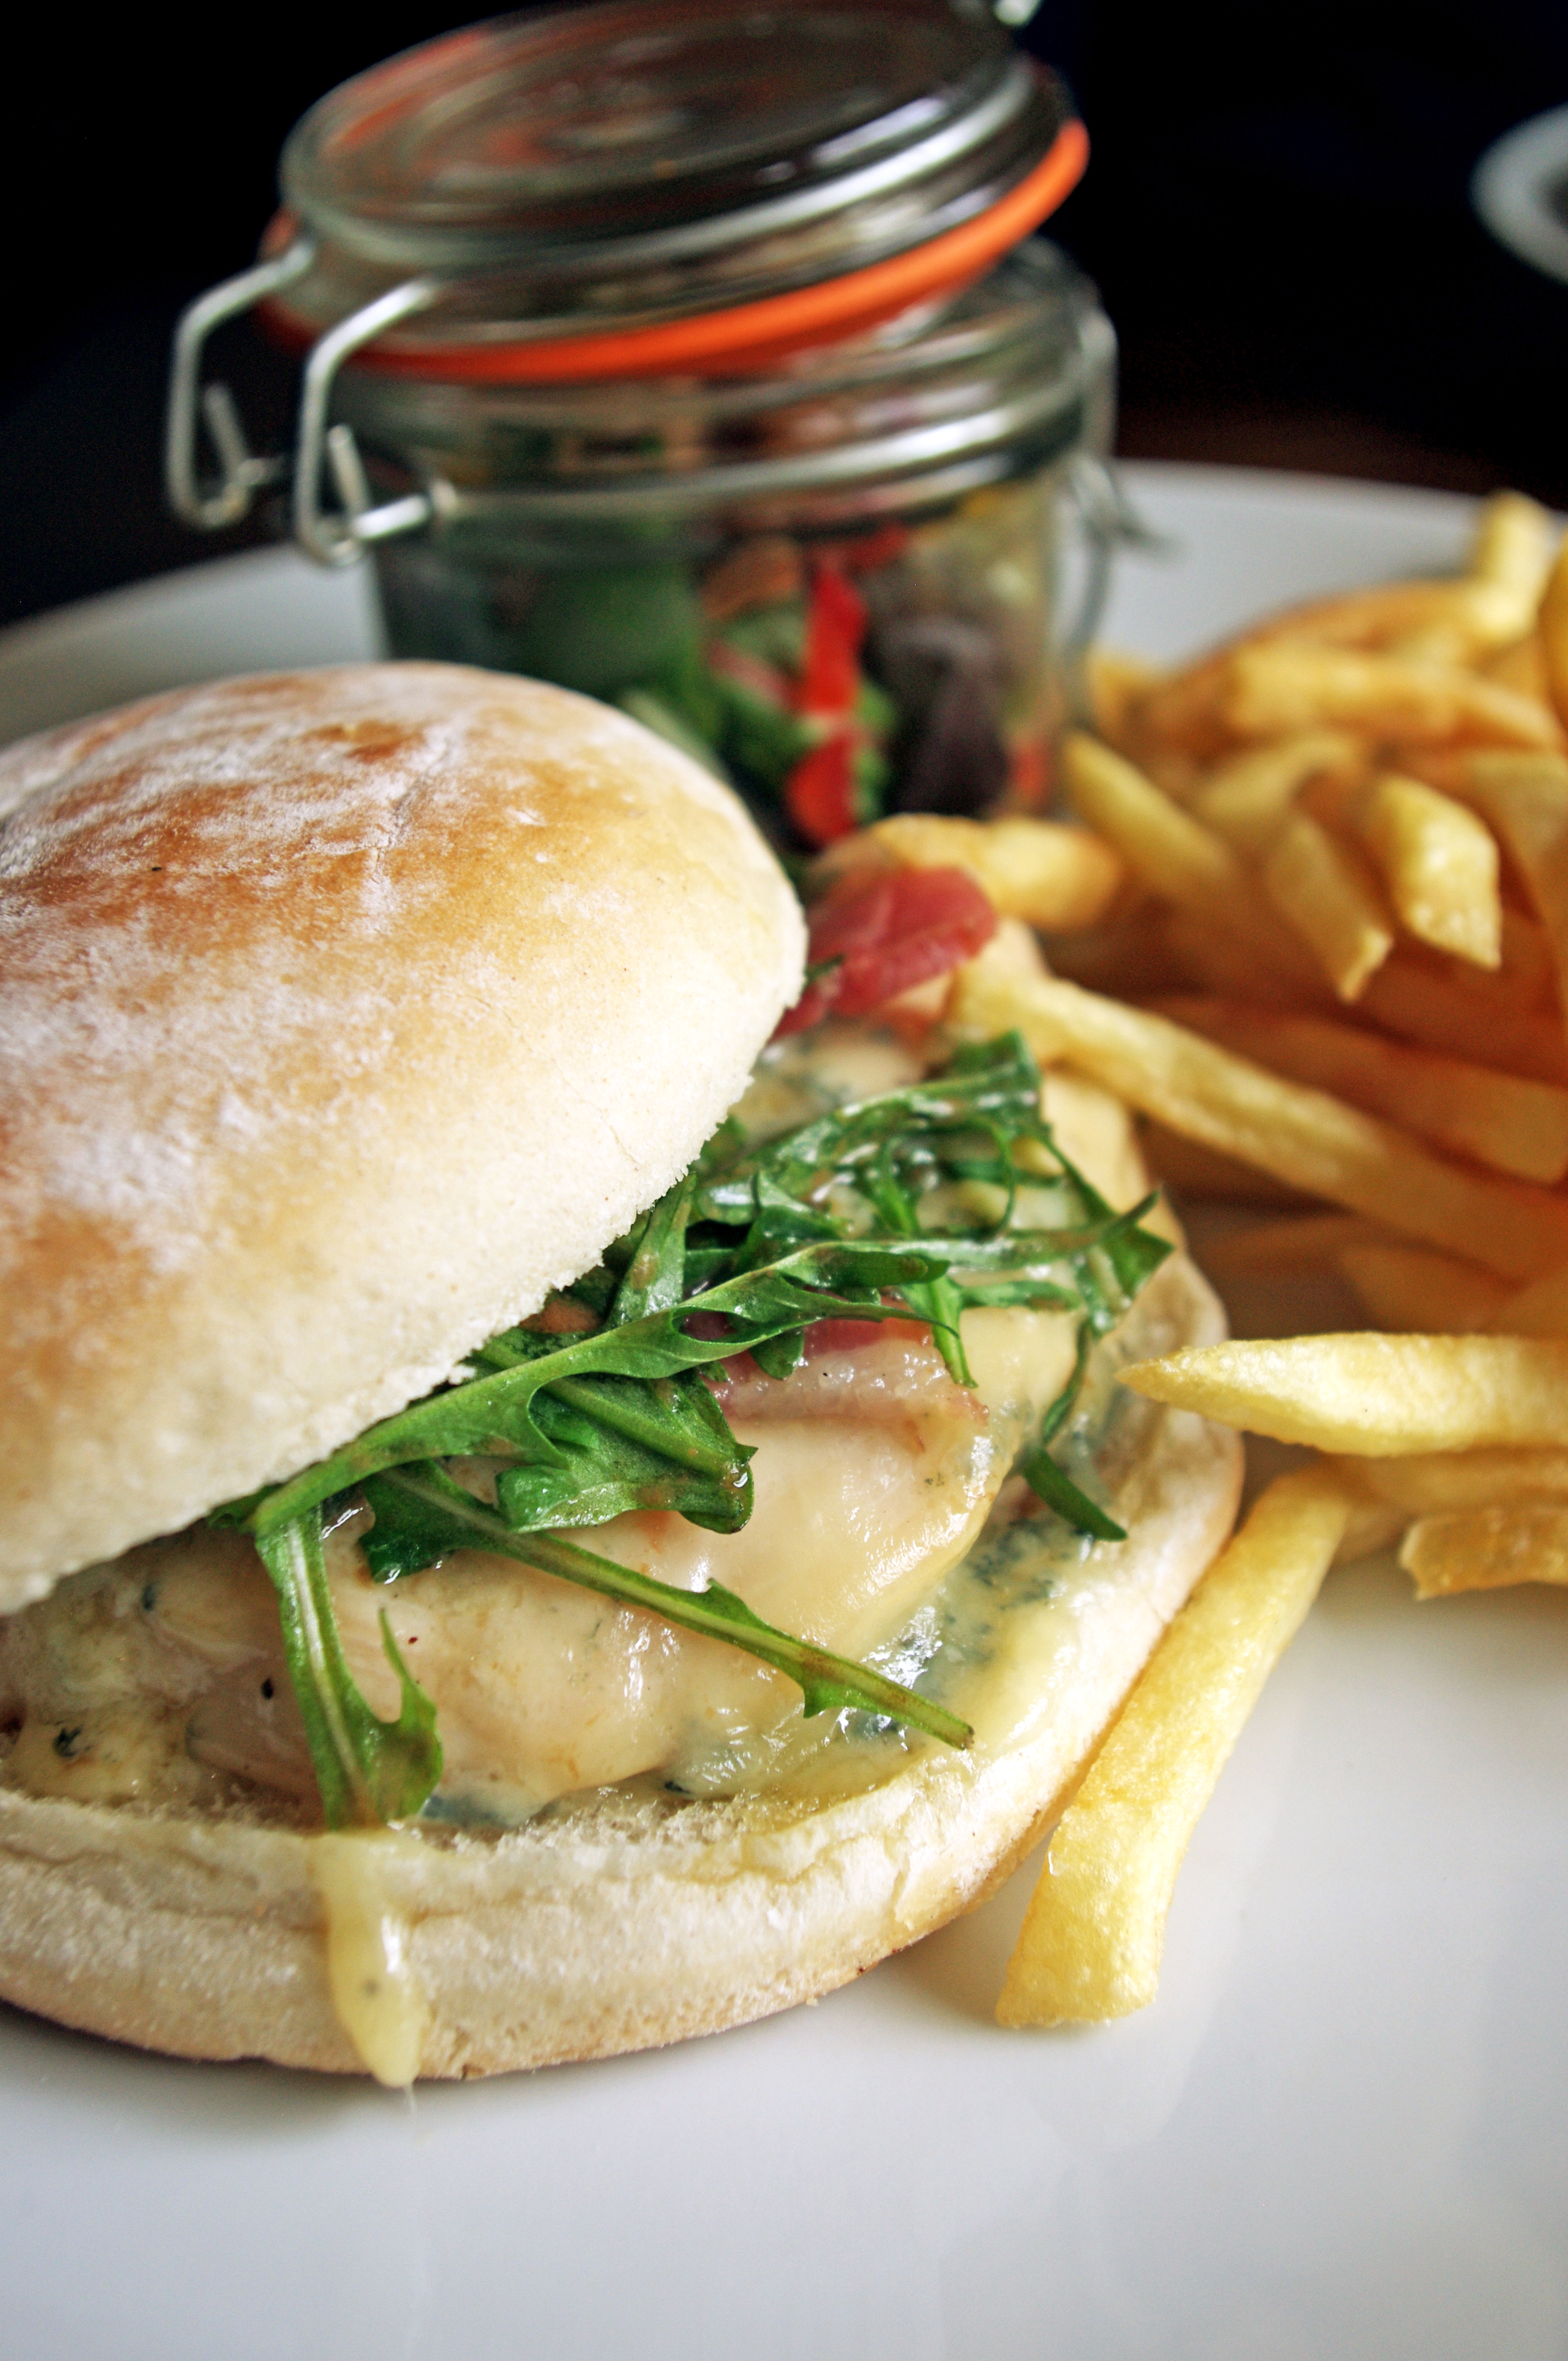 Chicken Burger With Bacon & Cheese